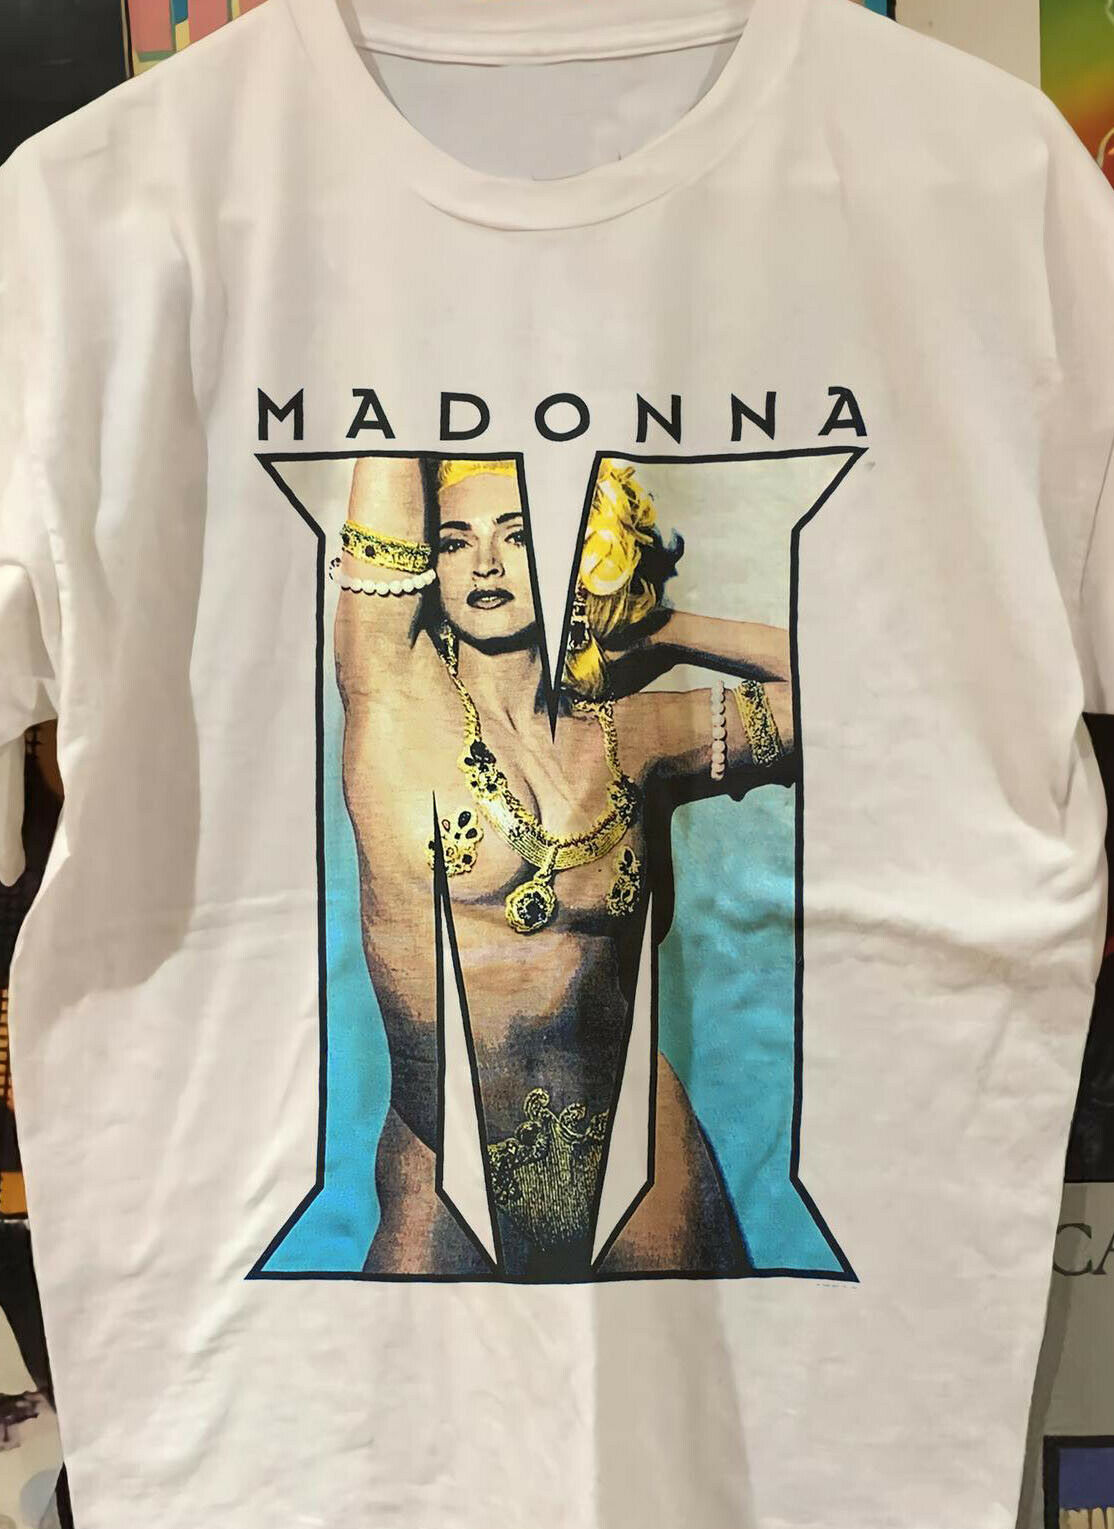 Vintage 90S Madonna Album Tour White T Shirt Unisex All Size M612 image